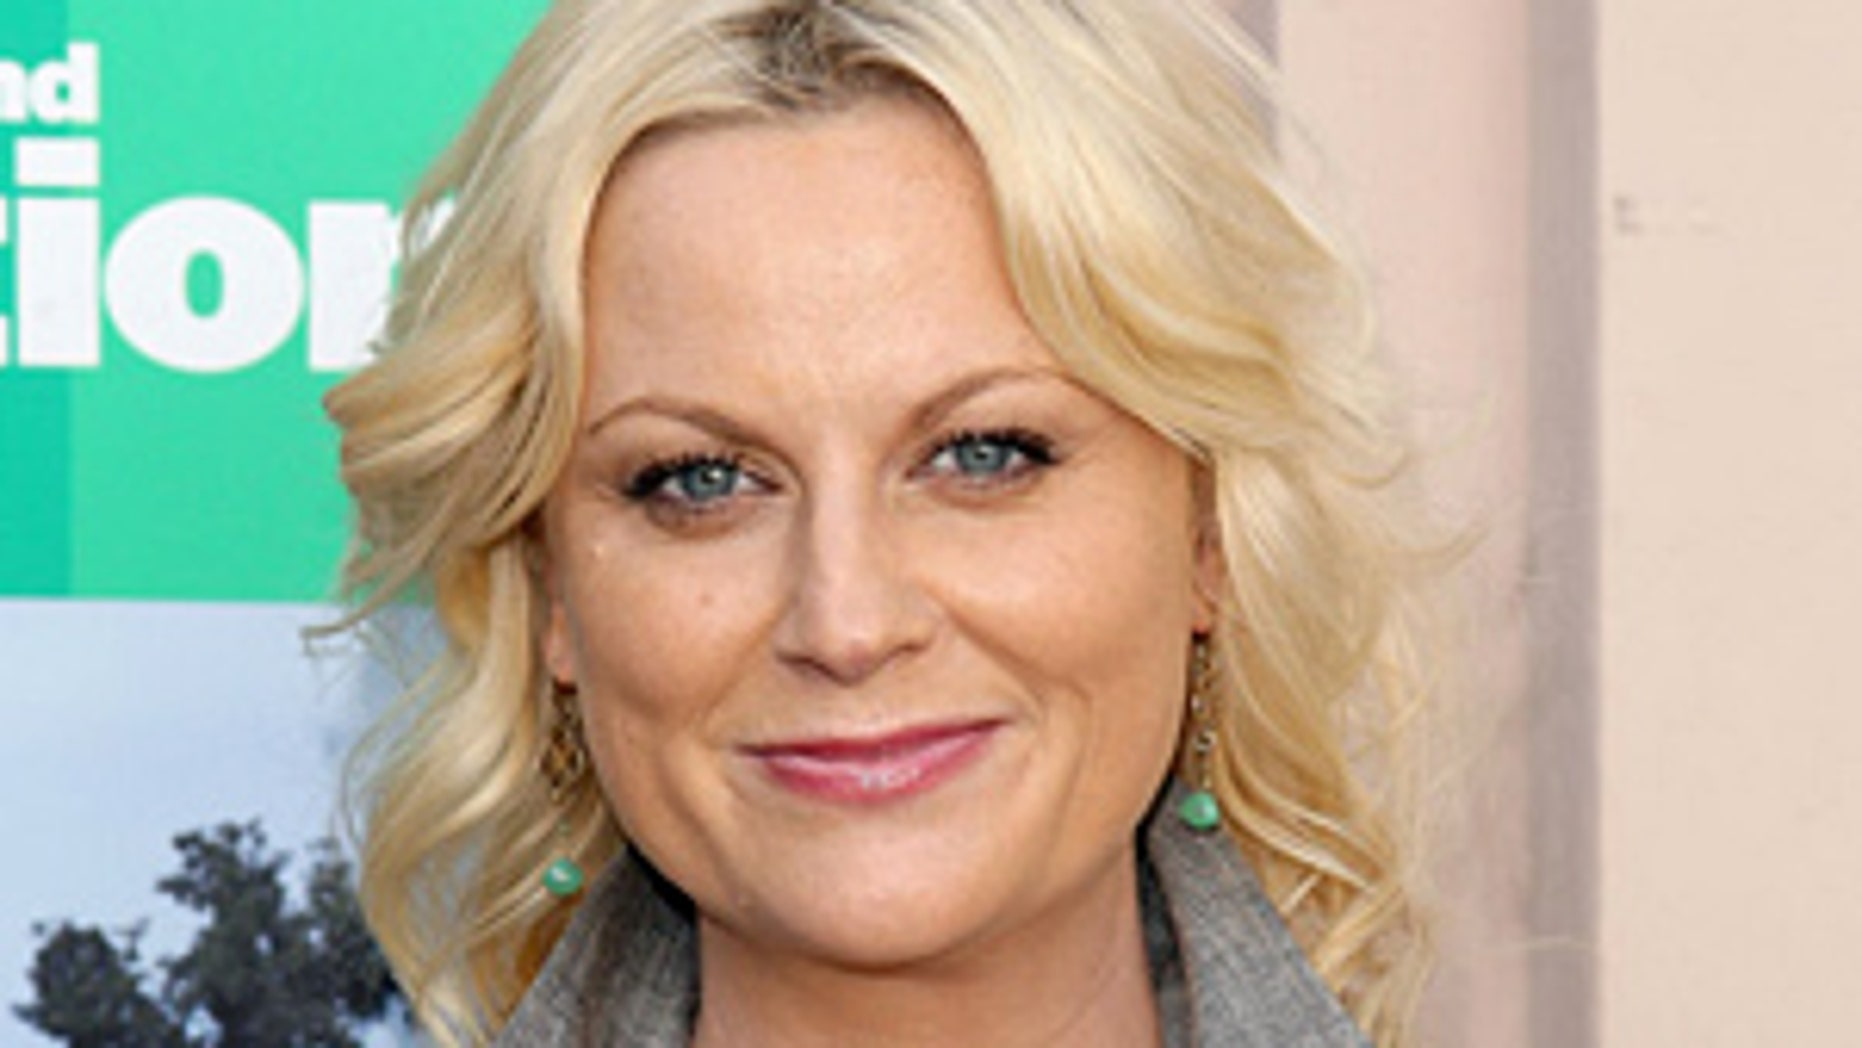 """Actress Amy Poehler arrives at the """"Parks And Recreation"""" Emmy Screening at the Leonard H. Goldenson Theatre on May 19, 2010 in Los Angeles, California. """"Parks And Recreation"""" Emmy Screening - Arrivals Leonard H. Goldenson Theatre North Hollywood, CA United States May 19, 2010 Photo by Jesse Grant/WireImage.com  To license this image (60501876), contact WireImage.com"""